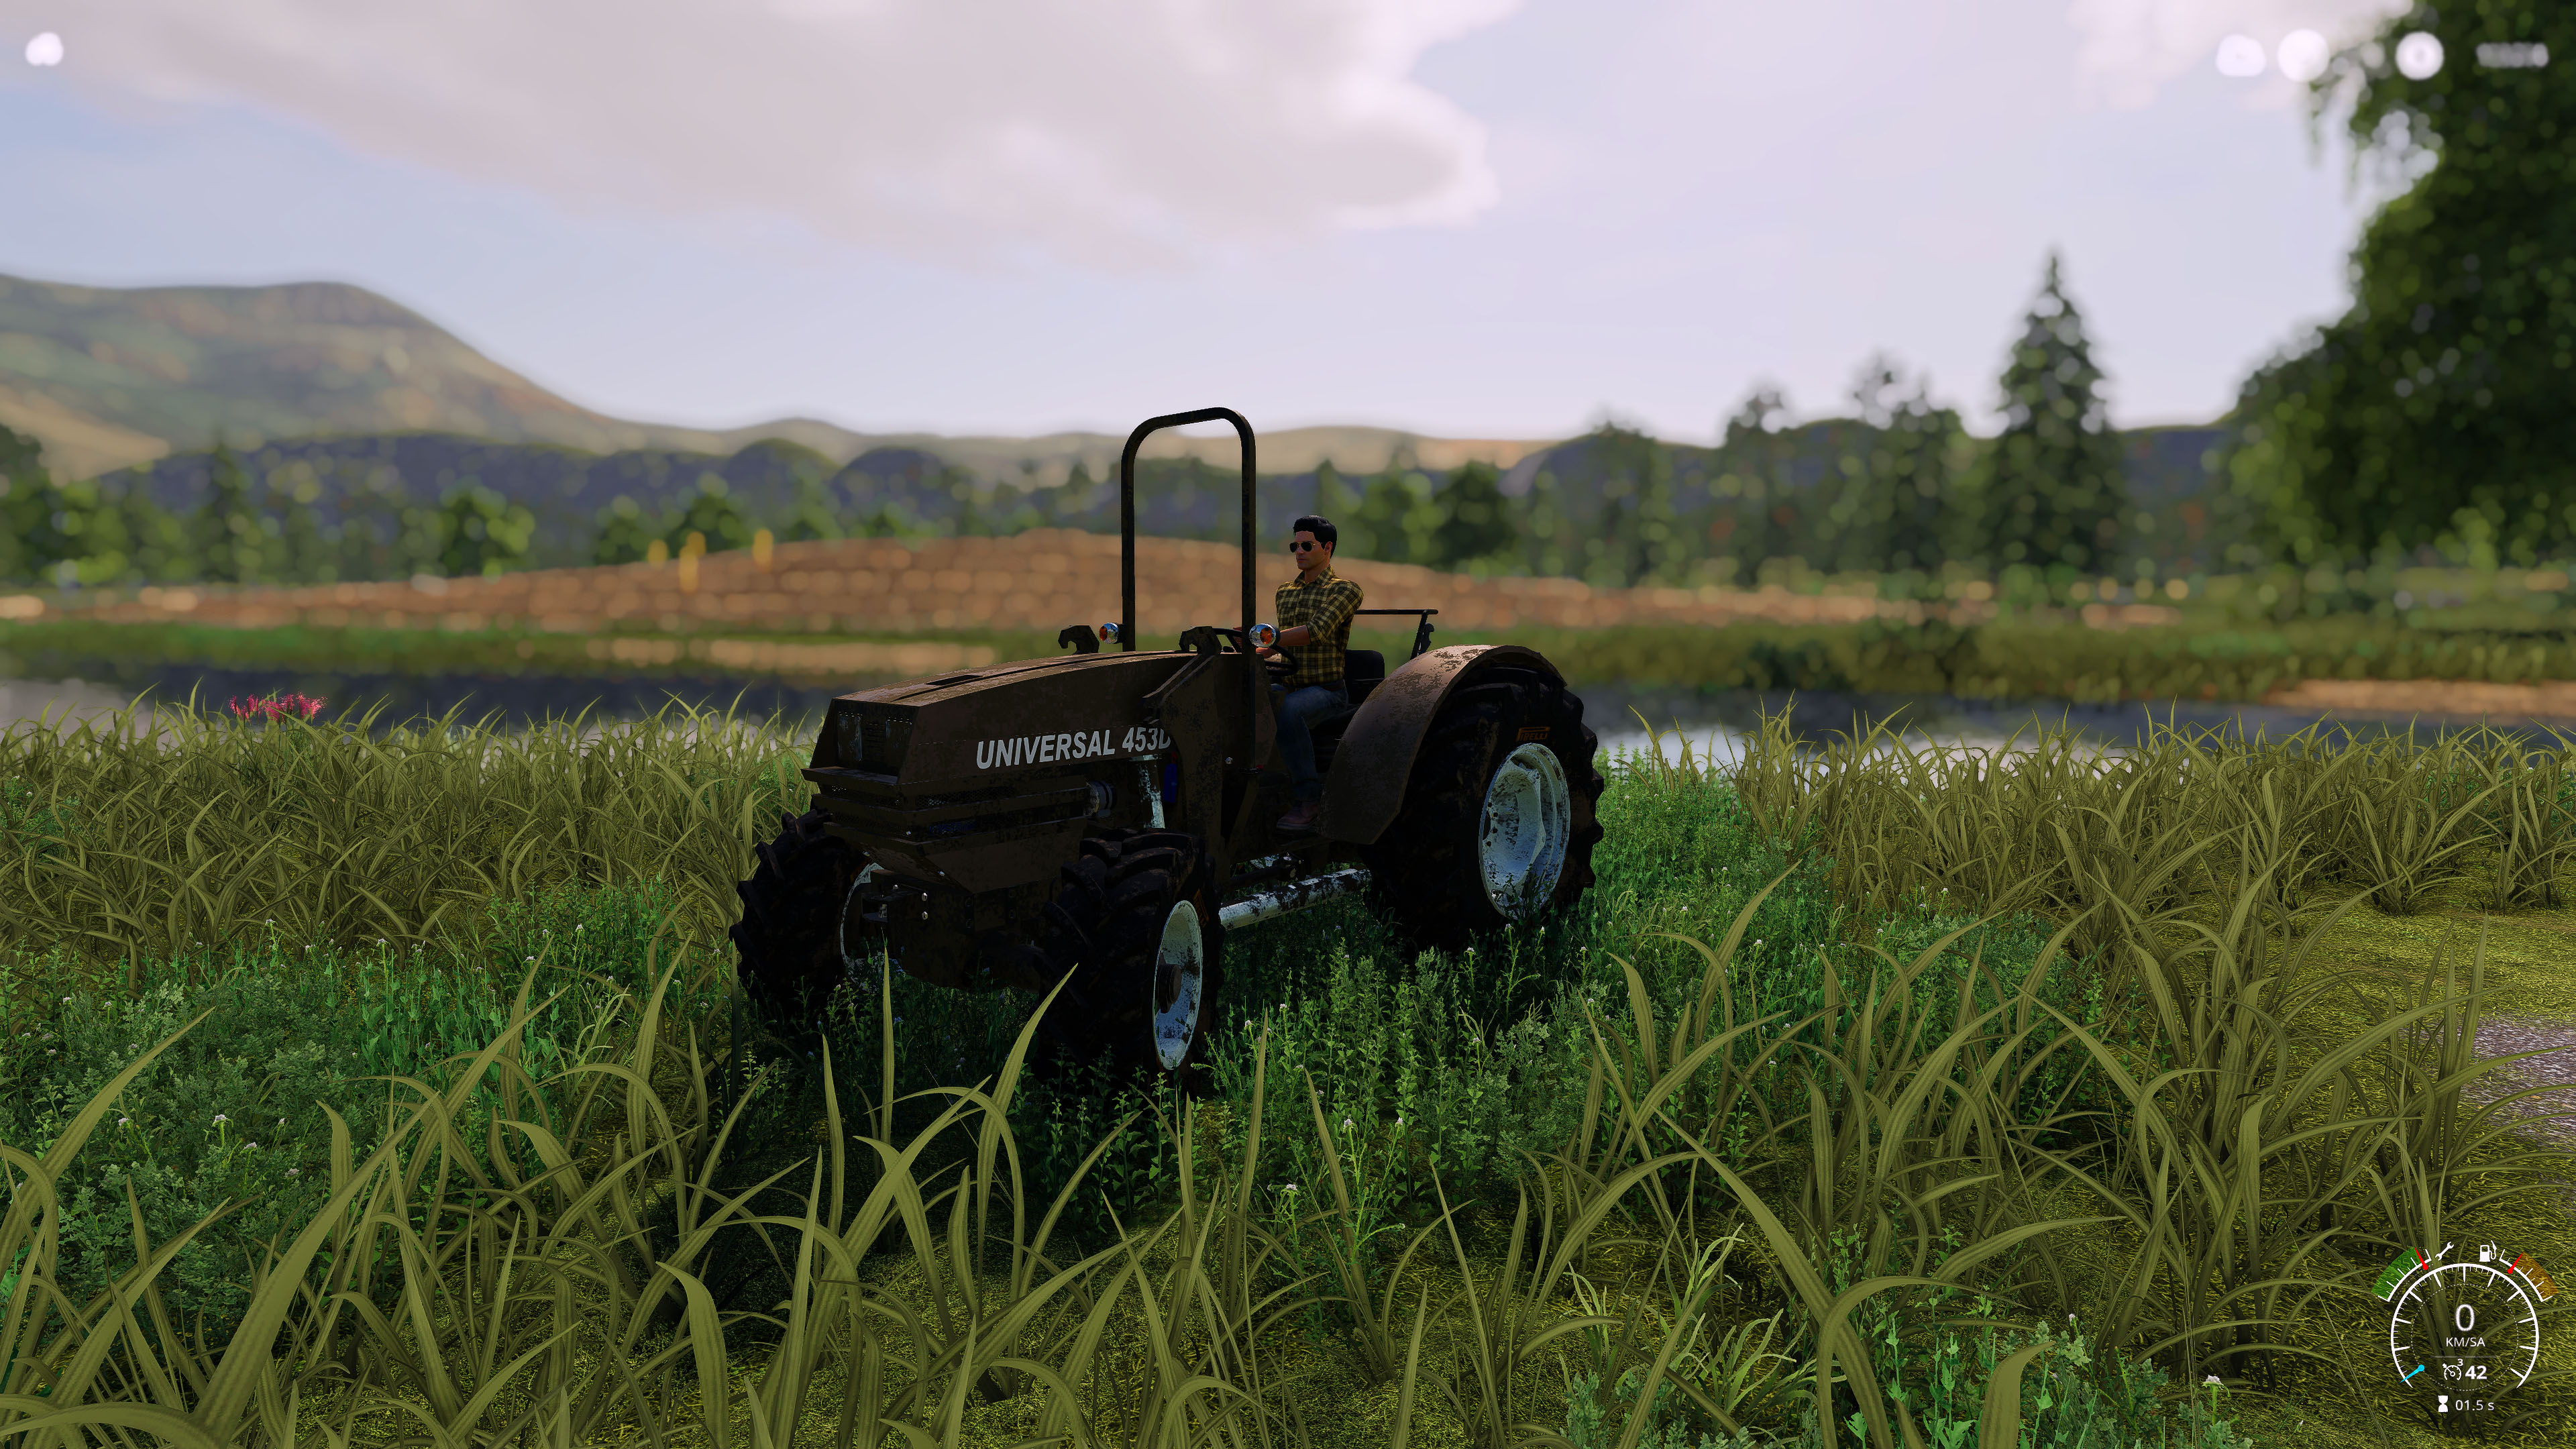 Wallpaper farming simulator farming simulator 2019 farmers 3840x2160